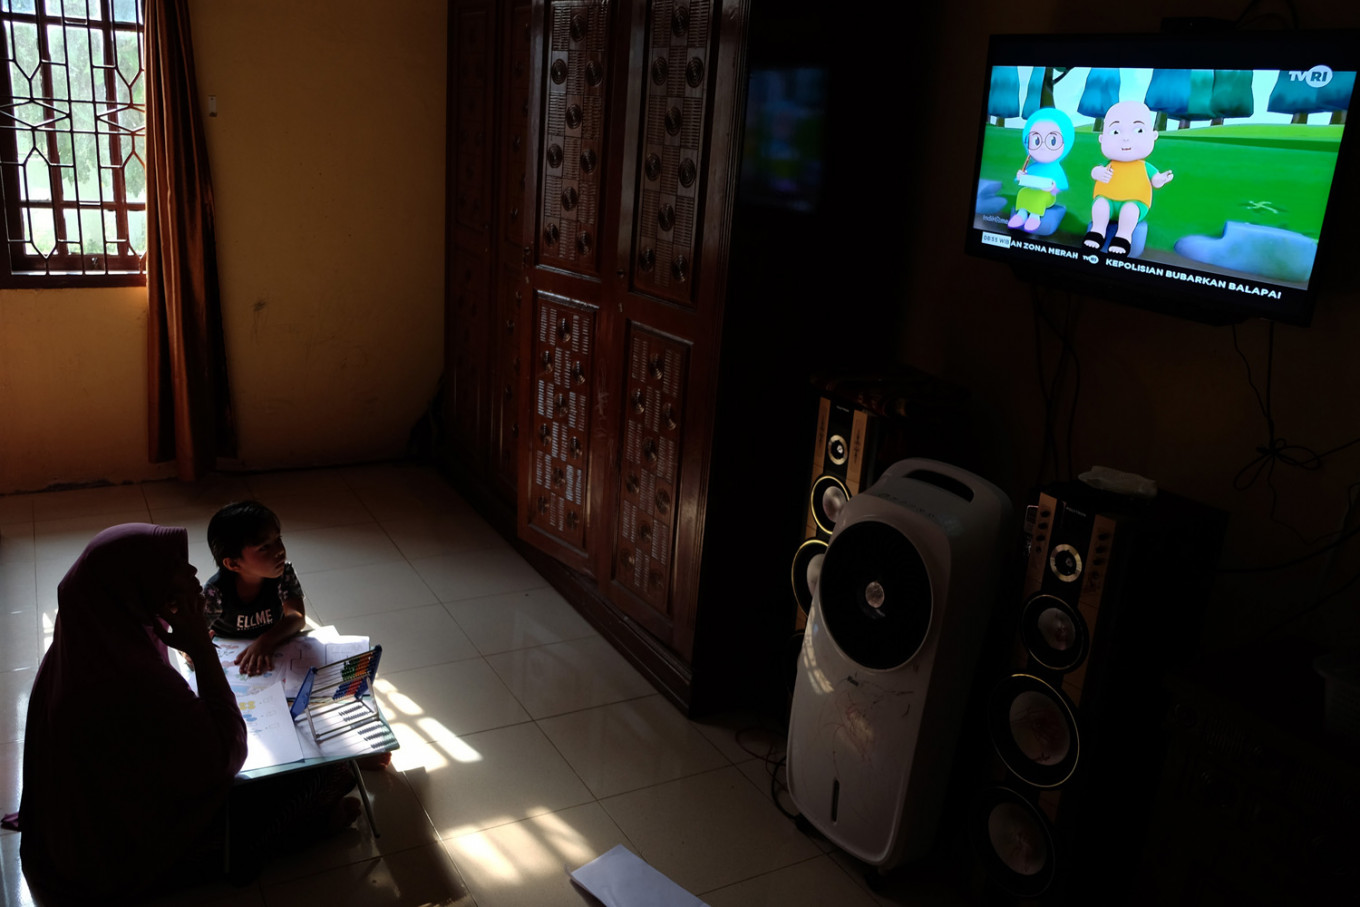 'It's fun!': Underrated TVRI becomes students' favorite during stay-at-home orders